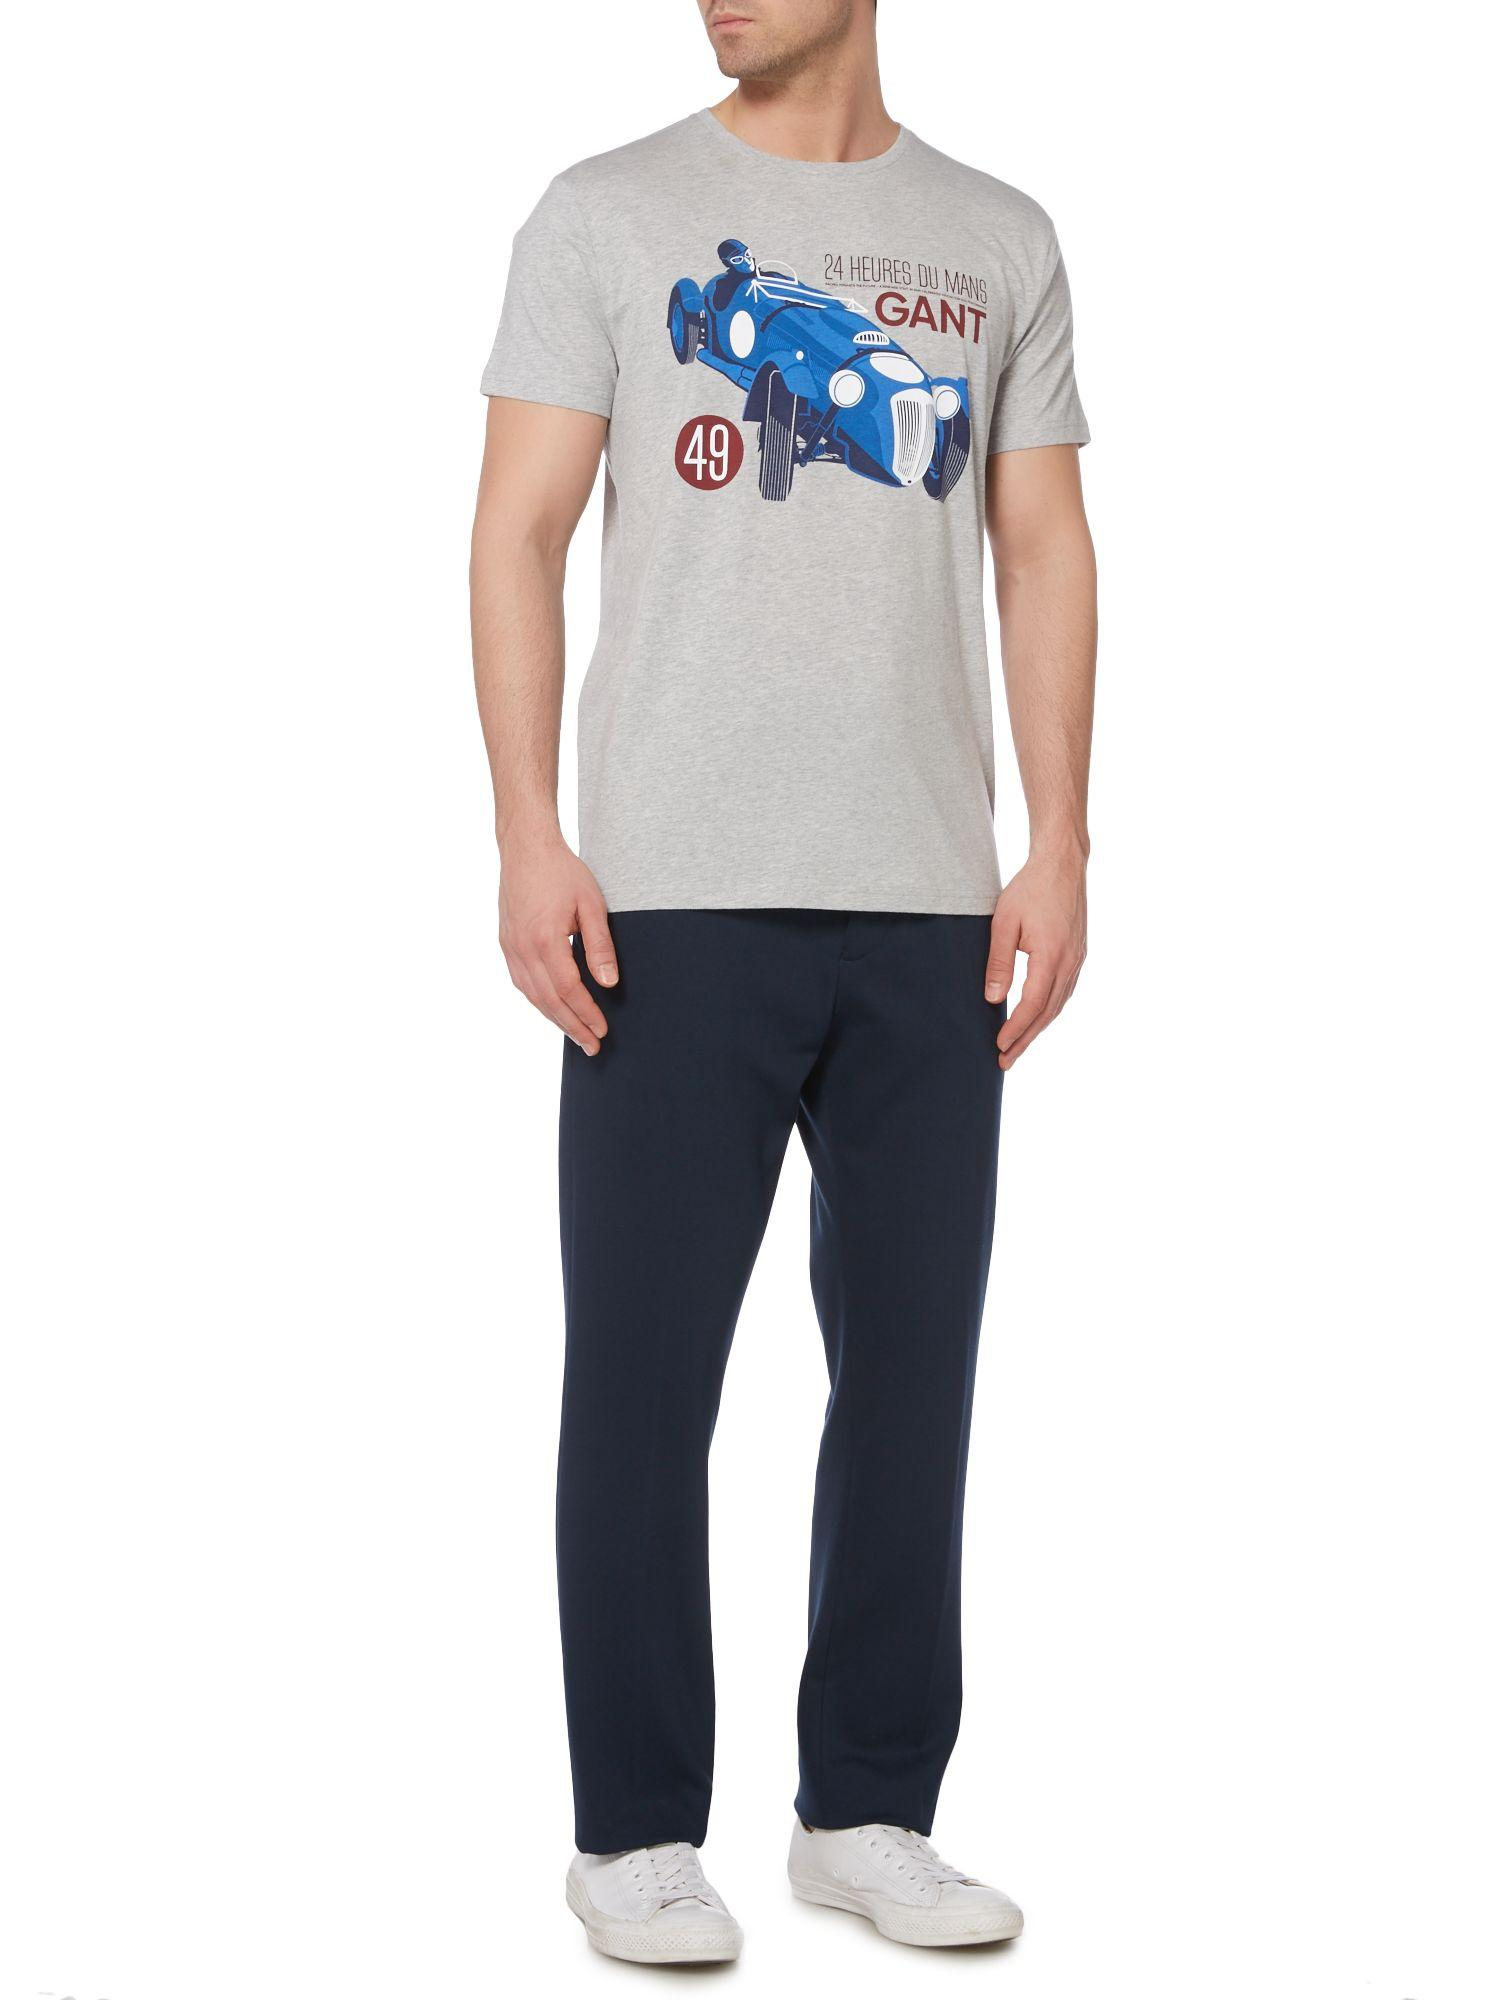 lyst gant le mans car print t shirt in gray for men. Black Bedroom Furniture Sets. Home Design Ideas